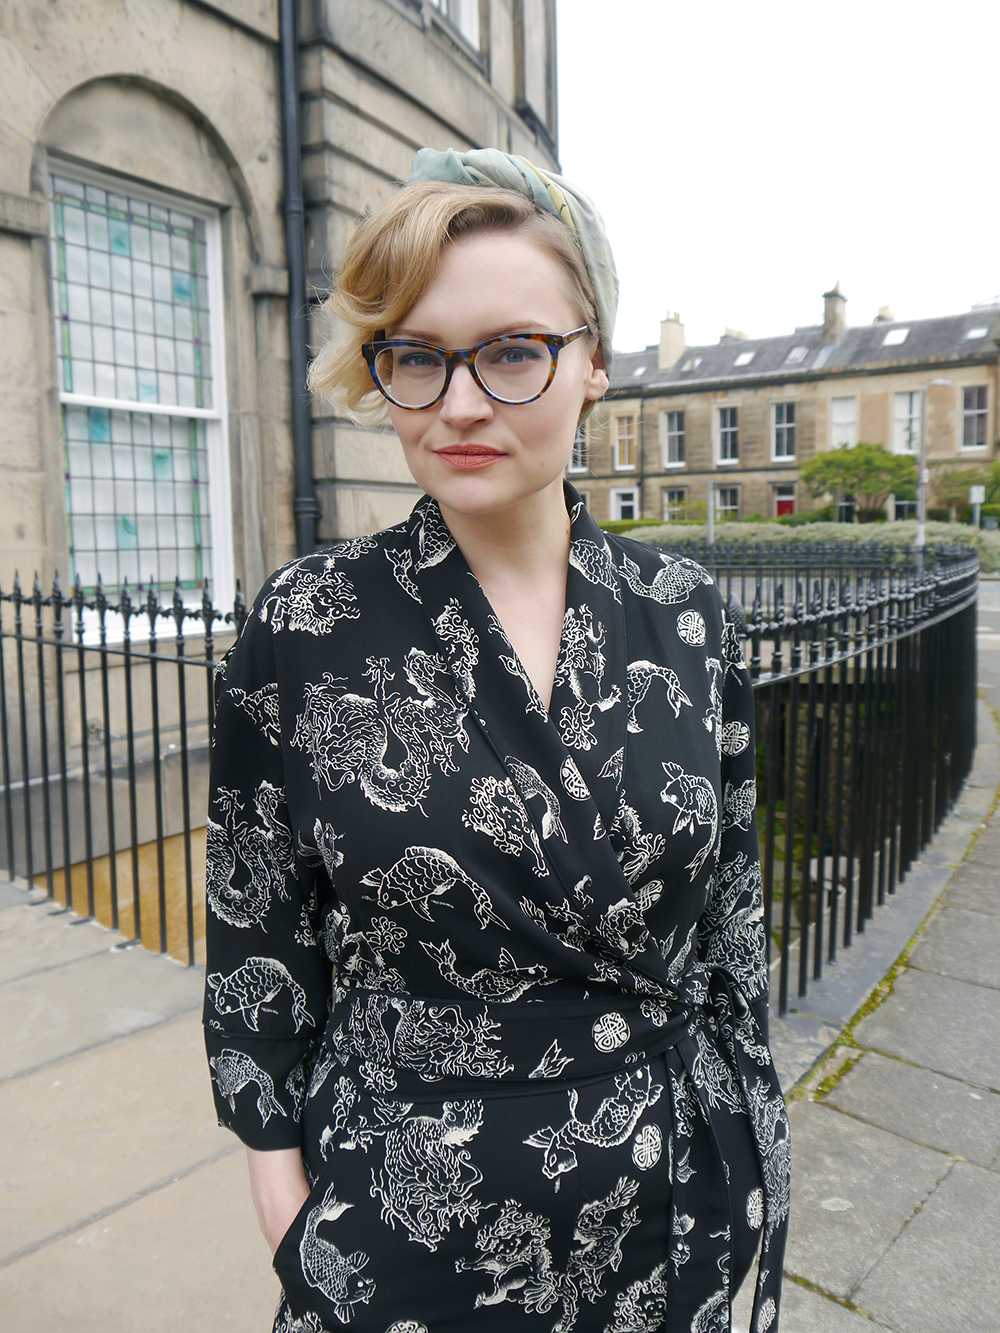 British fashion blogger Kimberley from Wardrobe Conversations wears a black print Biba jumpsuit, headscarf and CrossEyes glasses for an easy Sunday cocktail look